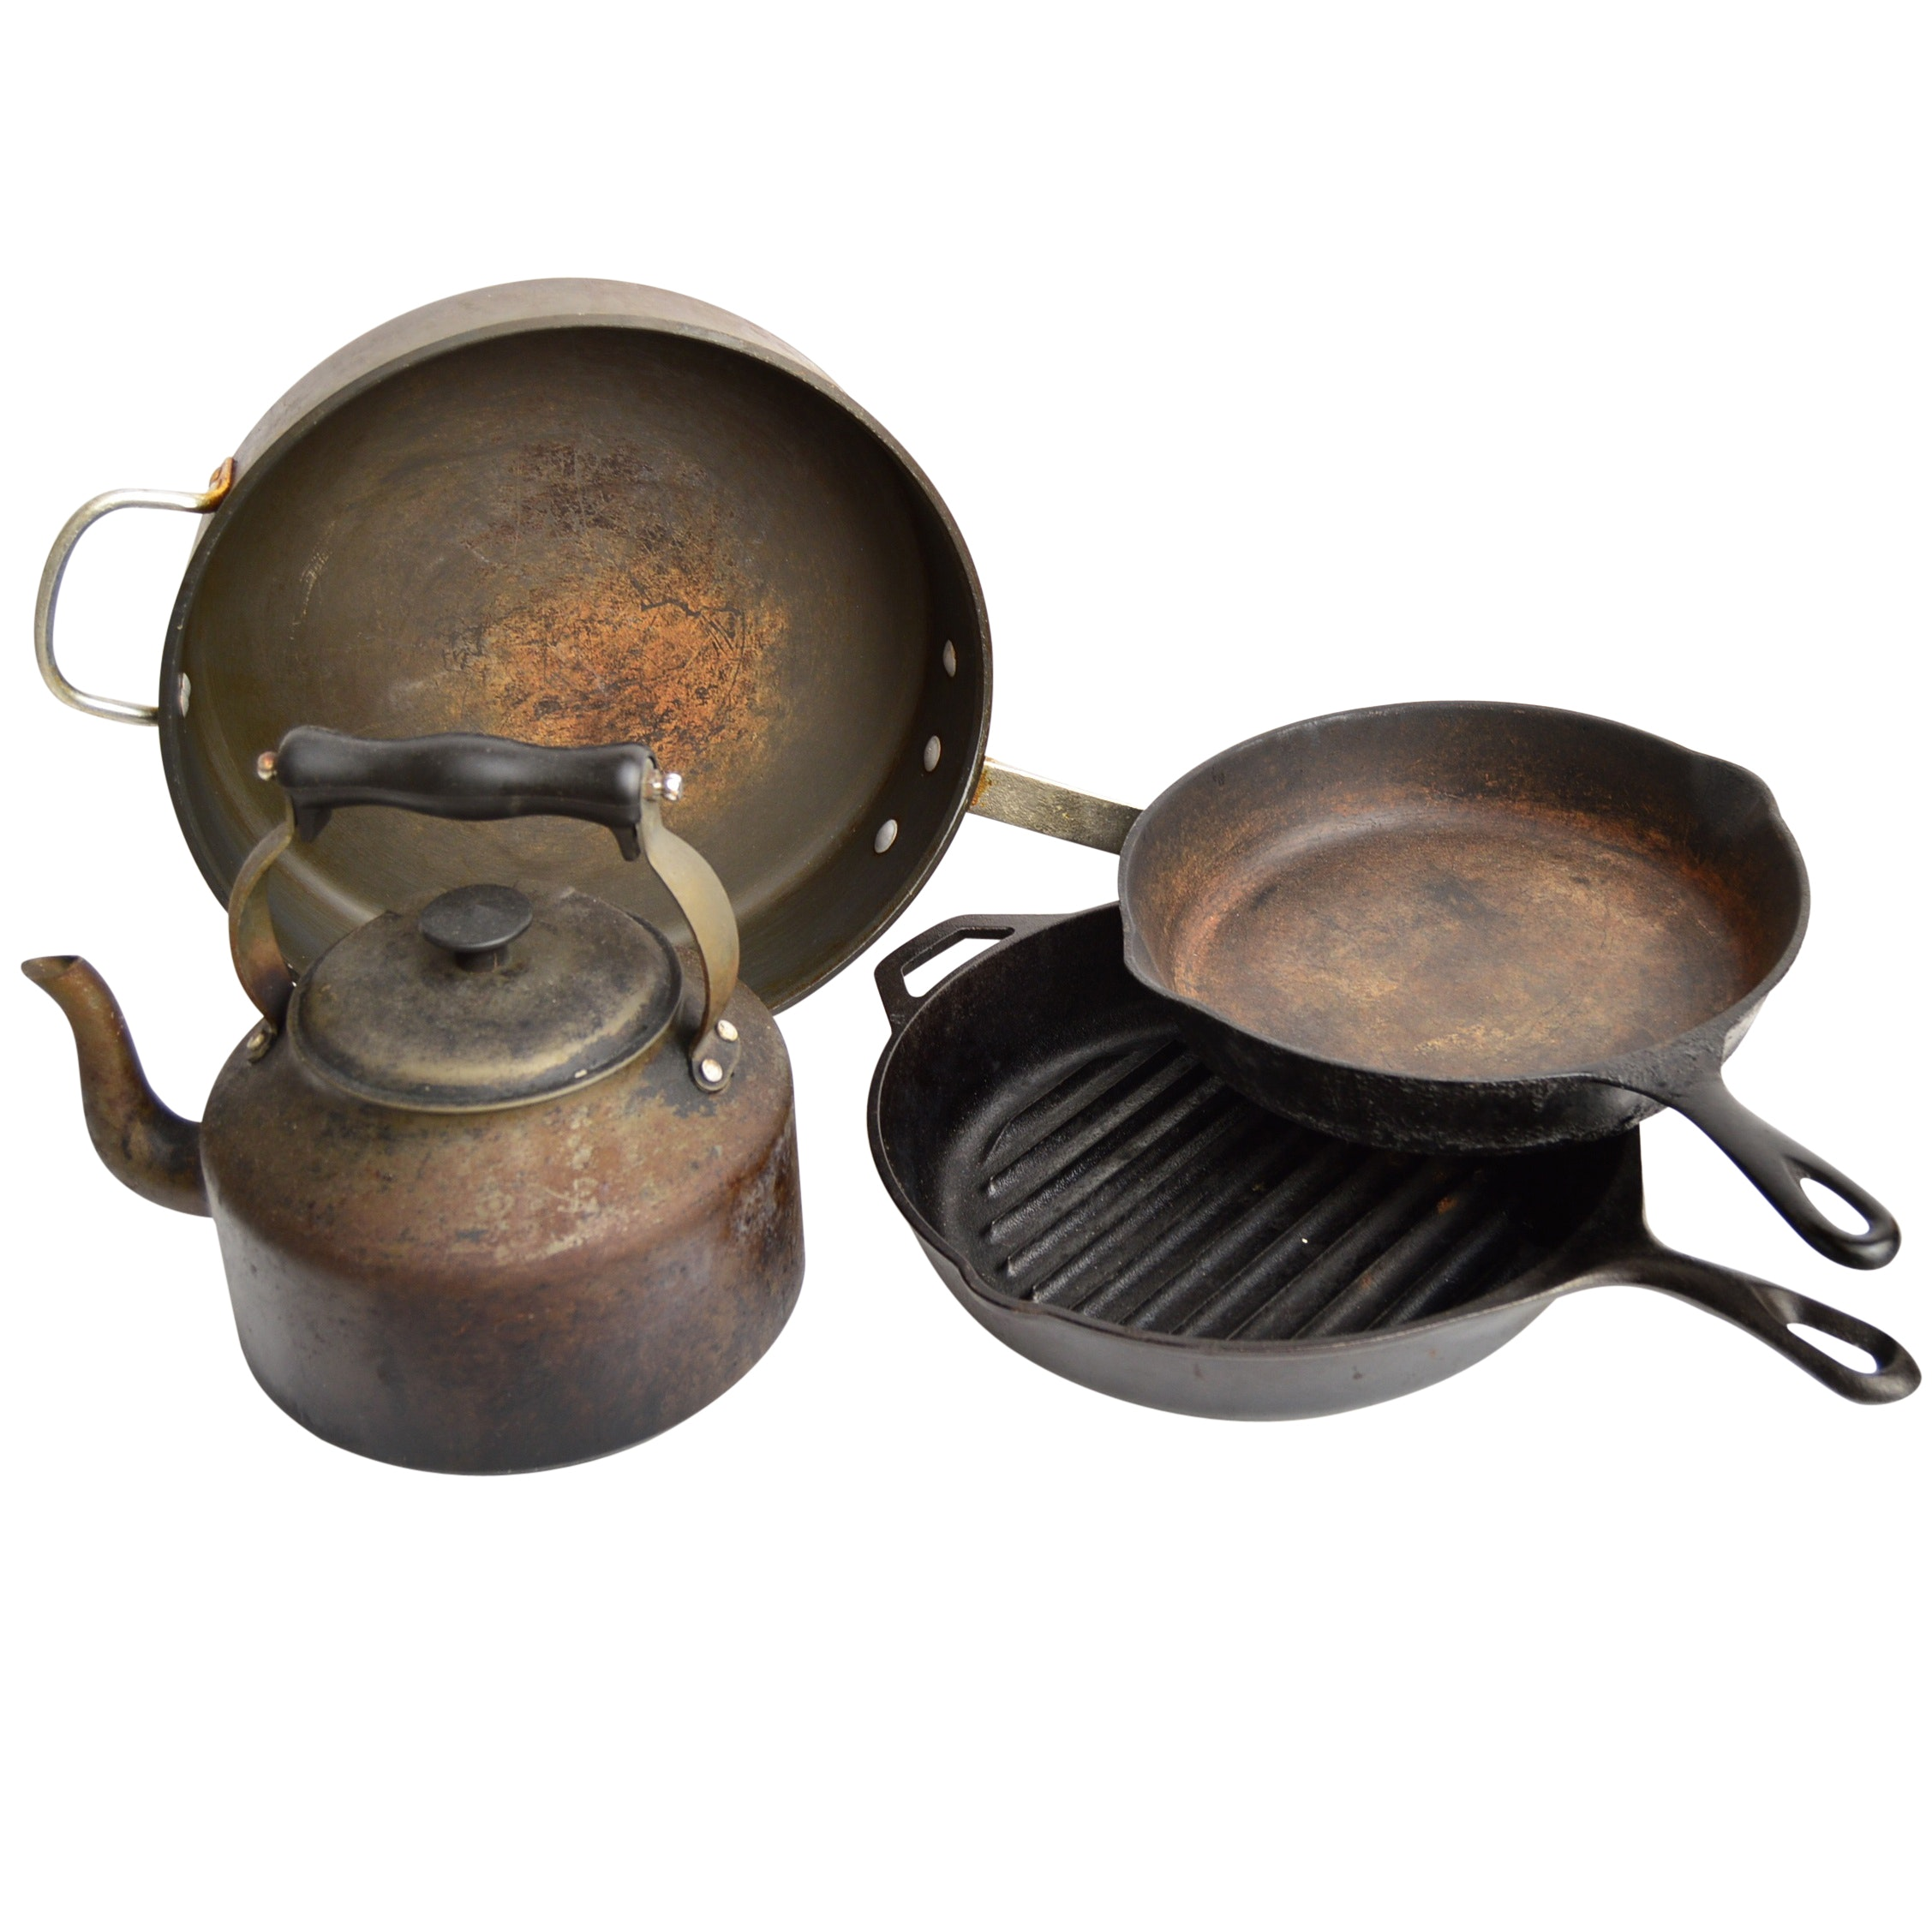 Vintage Iron Cookware with Caphalon, Lodge, Wagner Ware